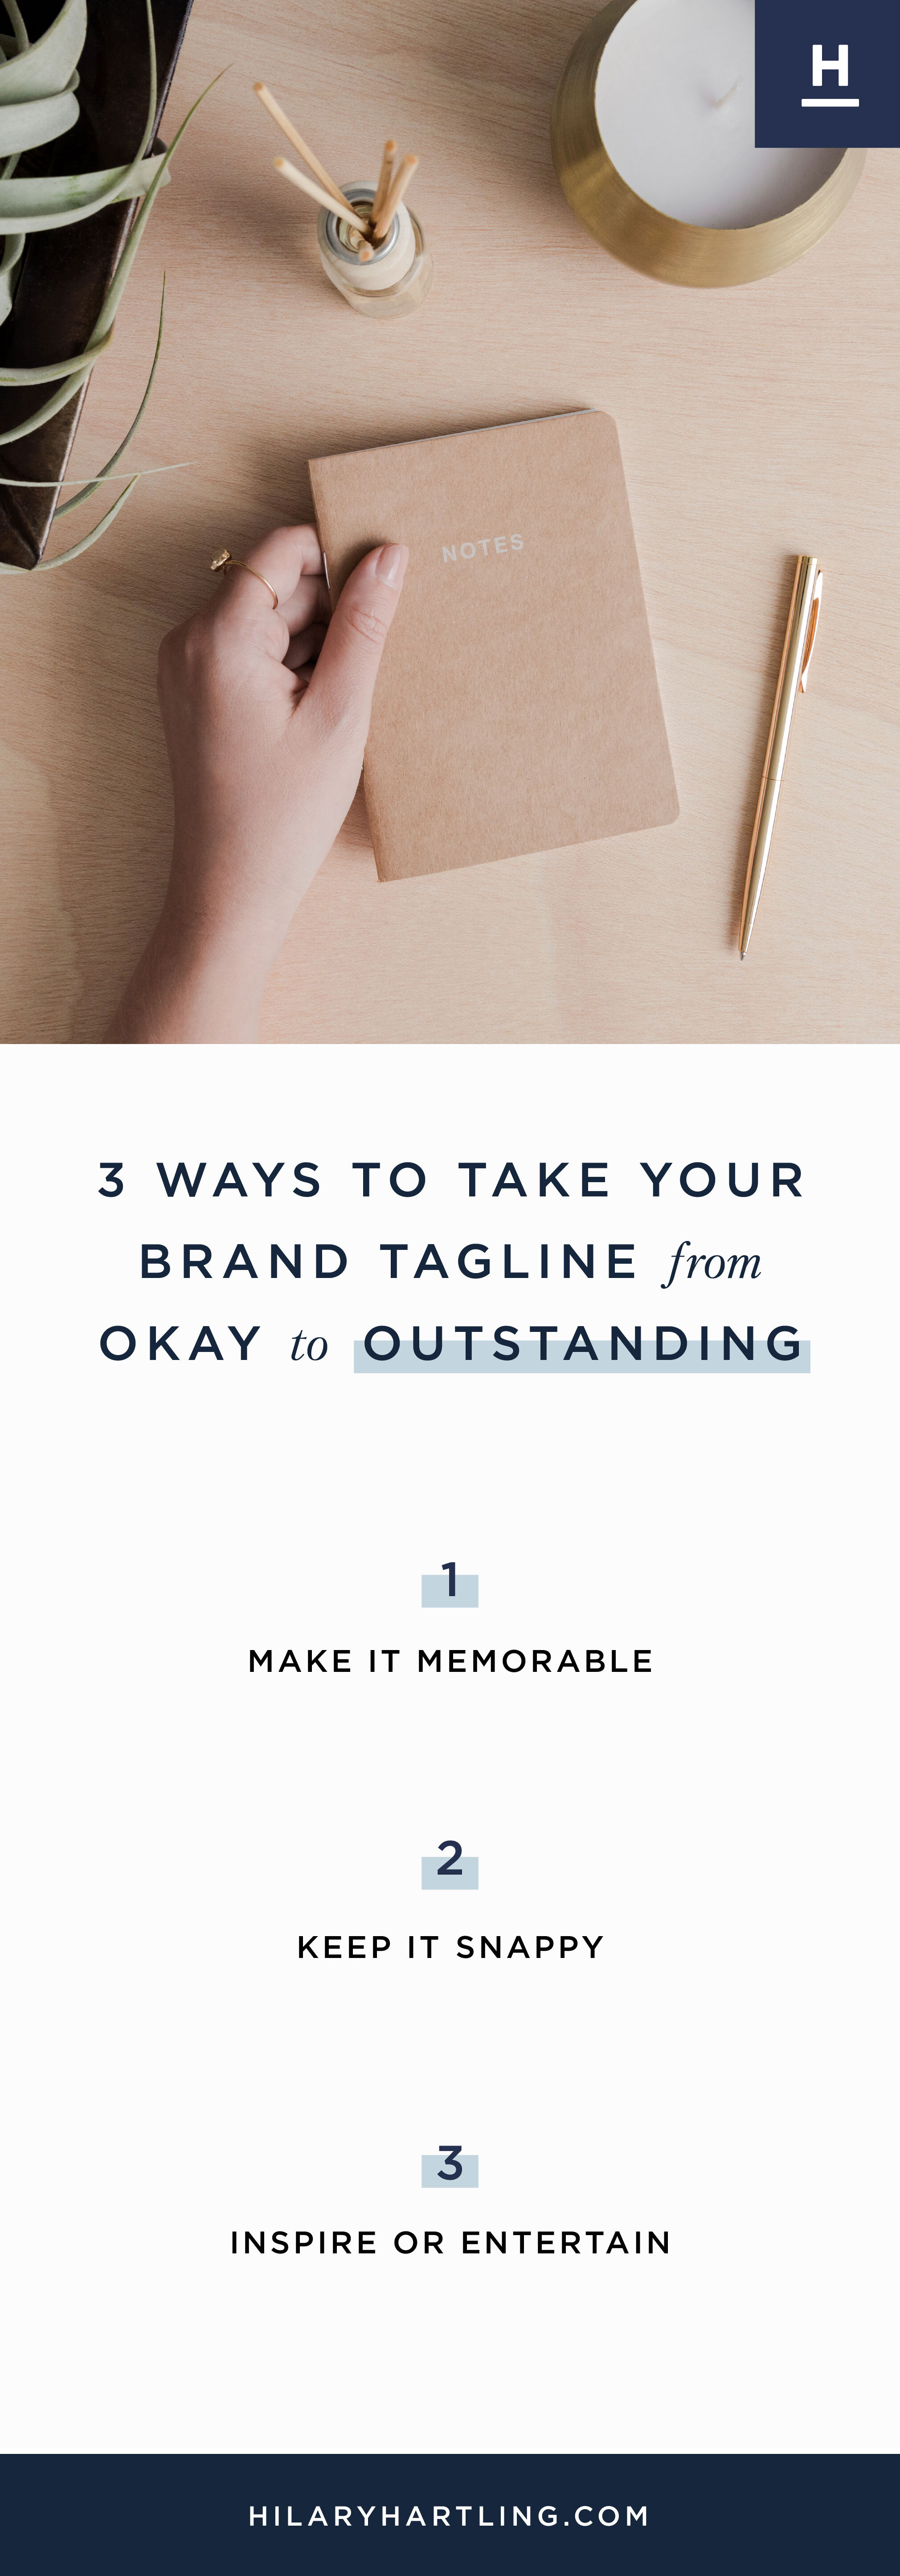 3-Ways-To-Take-Your-Brand-Tagline-from-Okay-to--Outstanding-2.jpg